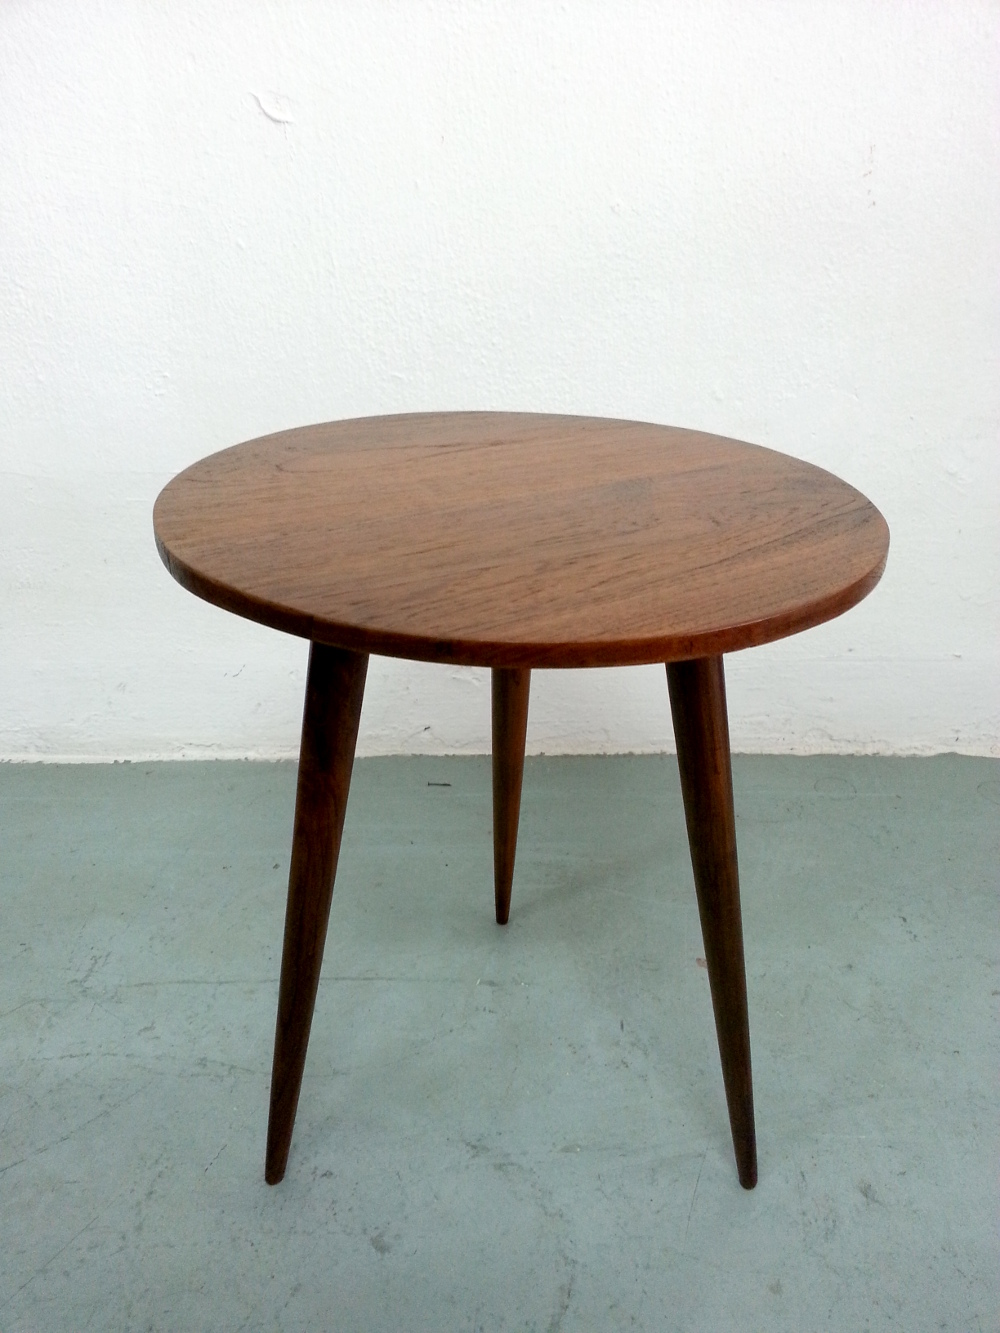 dog furniture the fantastic cool mid century modern coffee table rounded things your mother throw and end tables home side small rattan garden grain dining tall farm oval with